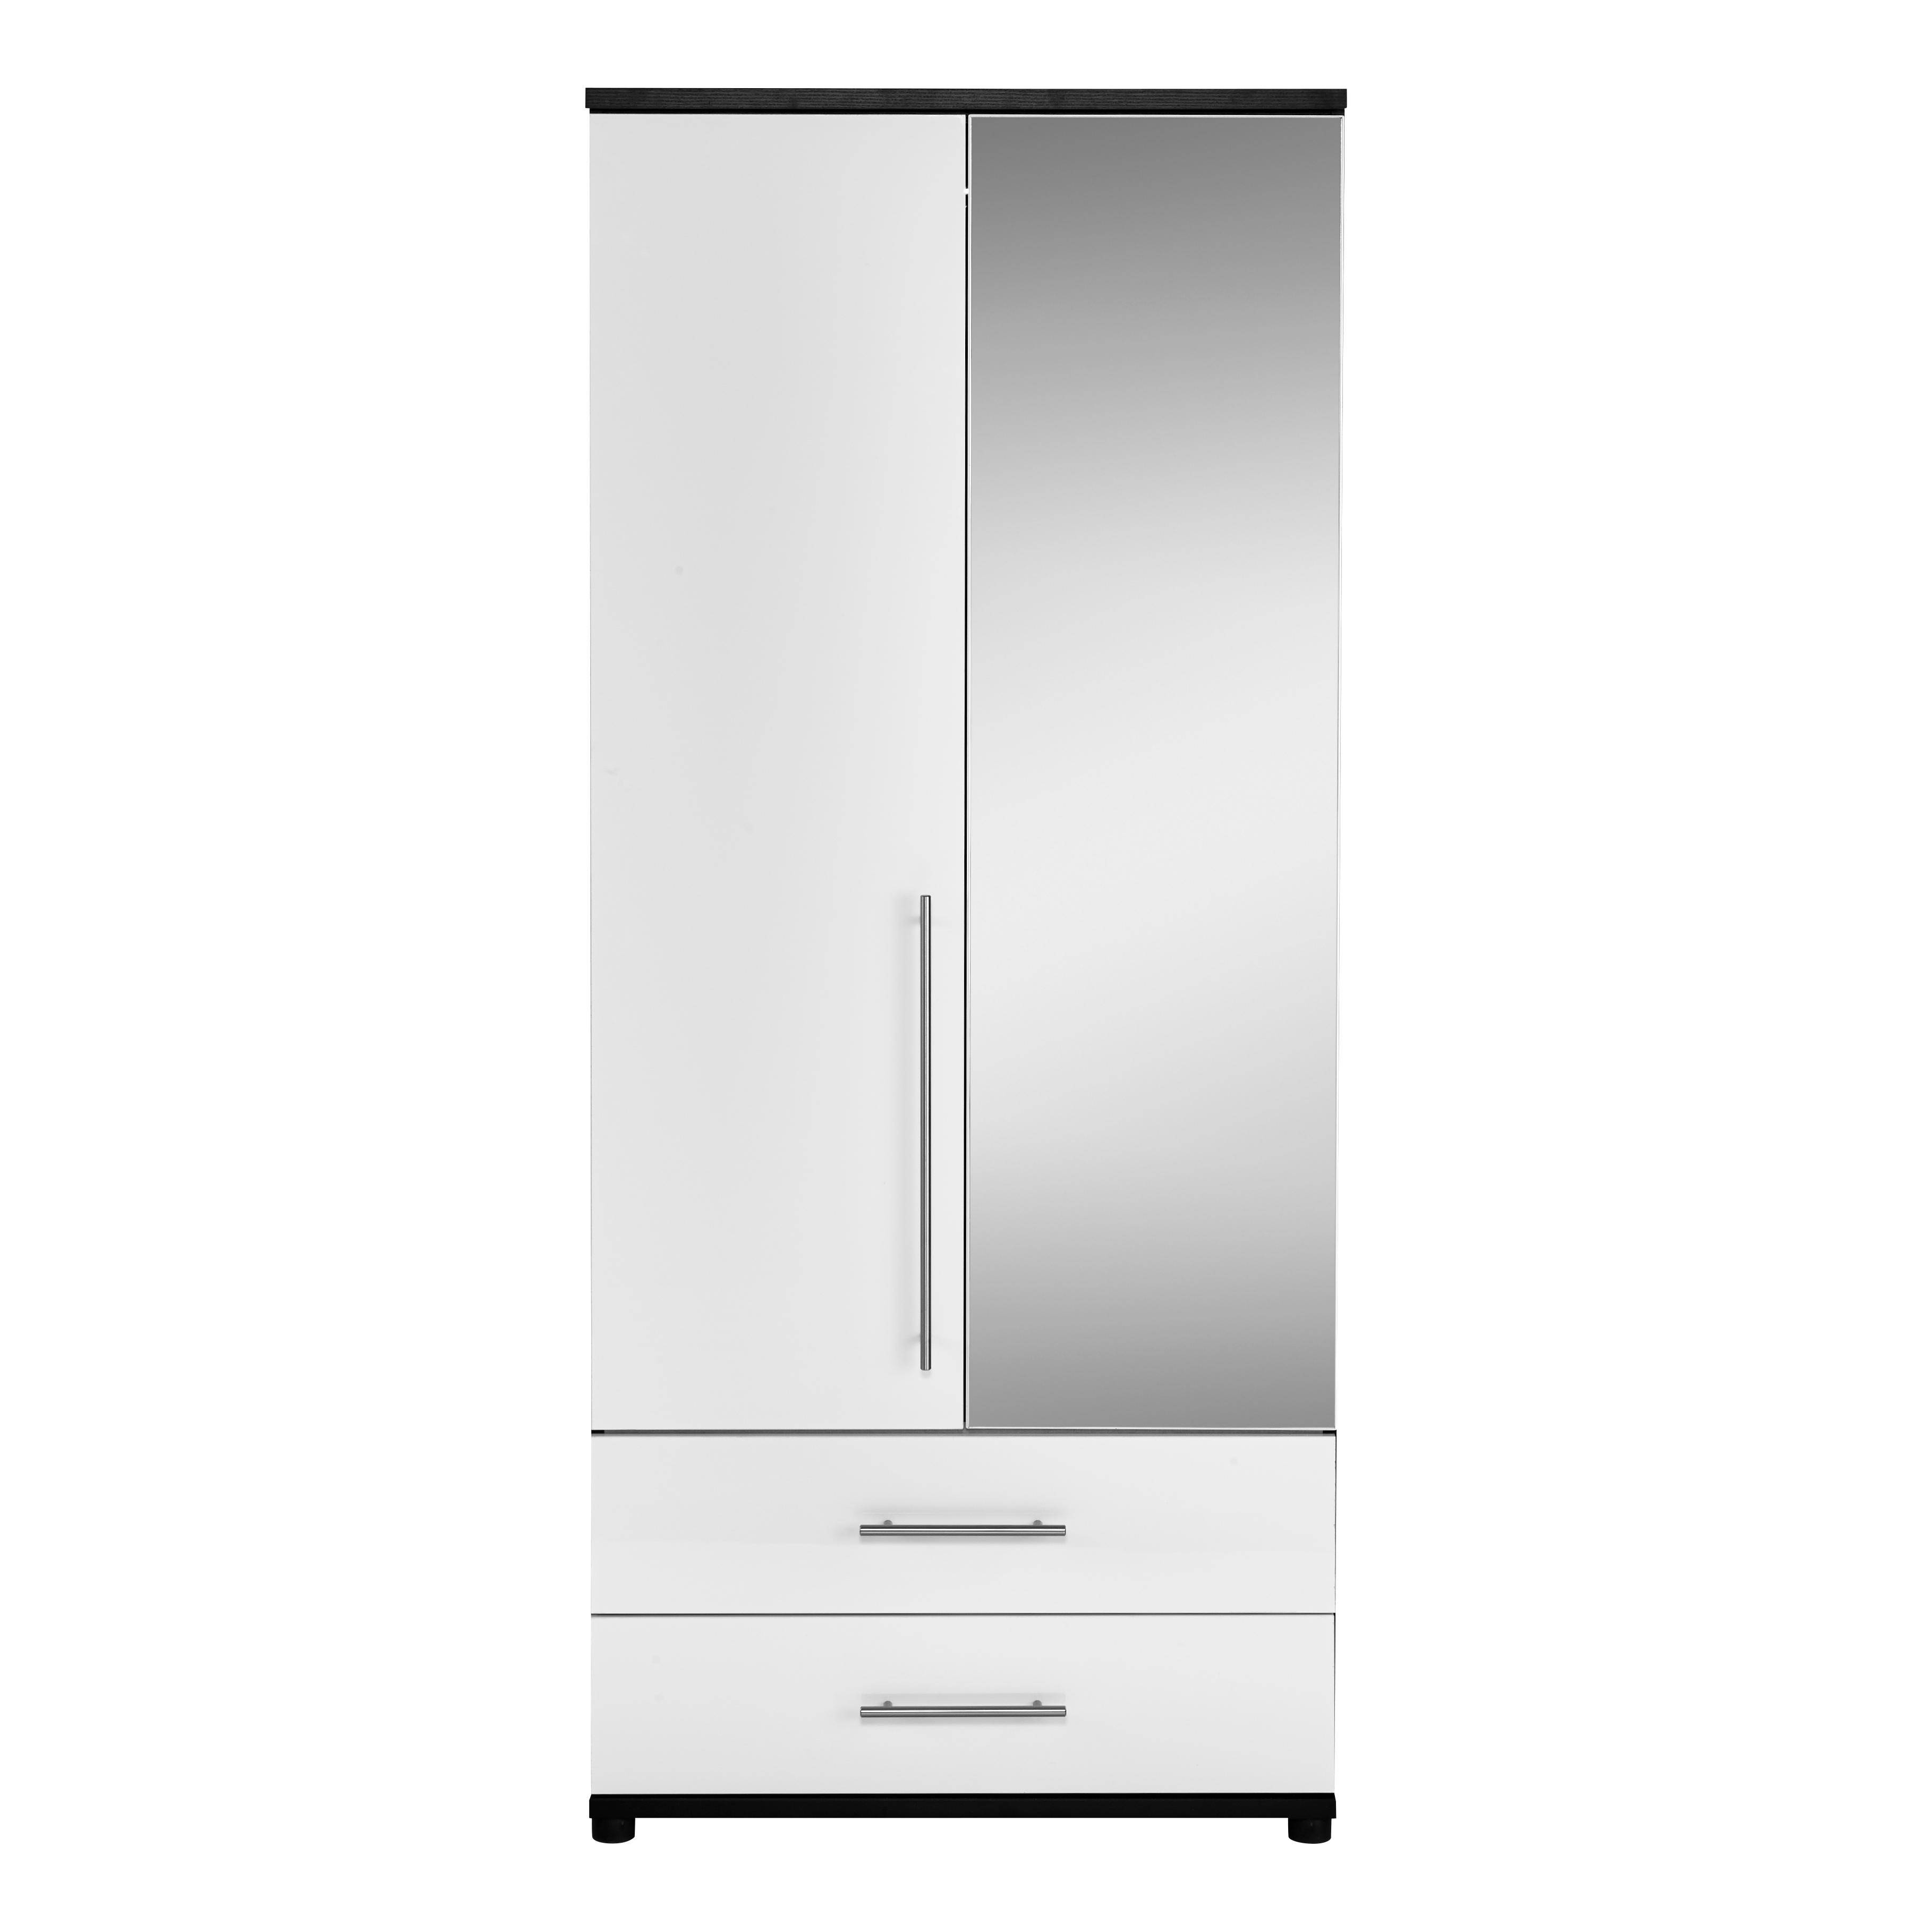 Kt Gloss 2 Door 2 Drawer Mirrored Wardrobe | Contemporary Bedroom inside White Gloss Mirrored Wardrobes (Image 5 of 15)